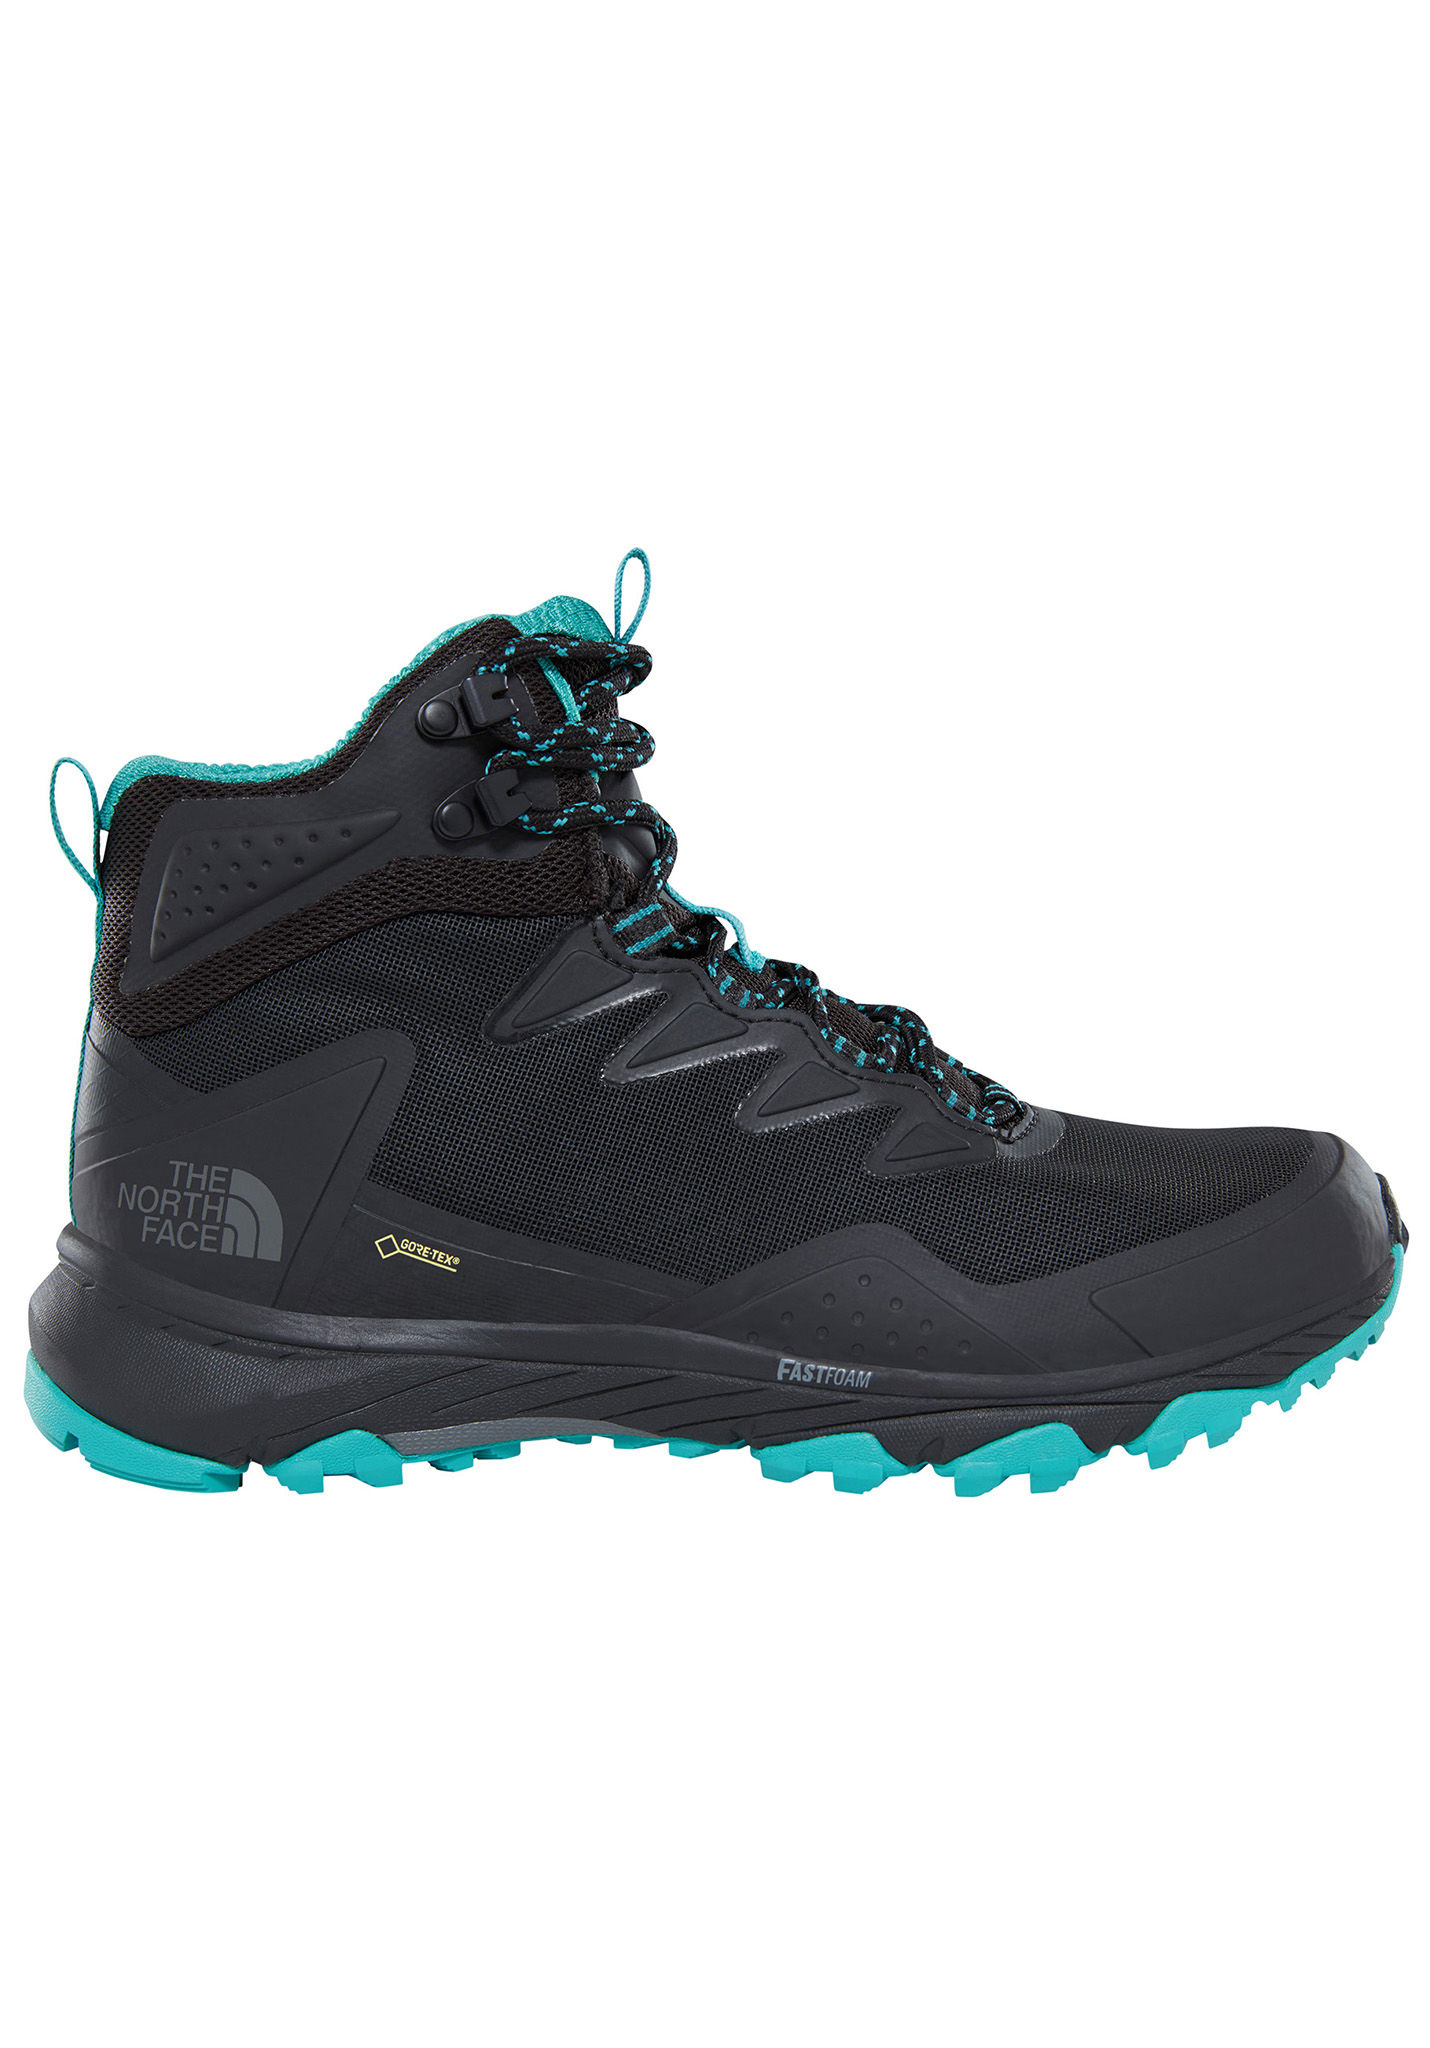 THE NORTH FACE Utra Fastpack III Mid GTX - Trekking Shoes for Women - Black  - Planet Sports 883c4b5be777